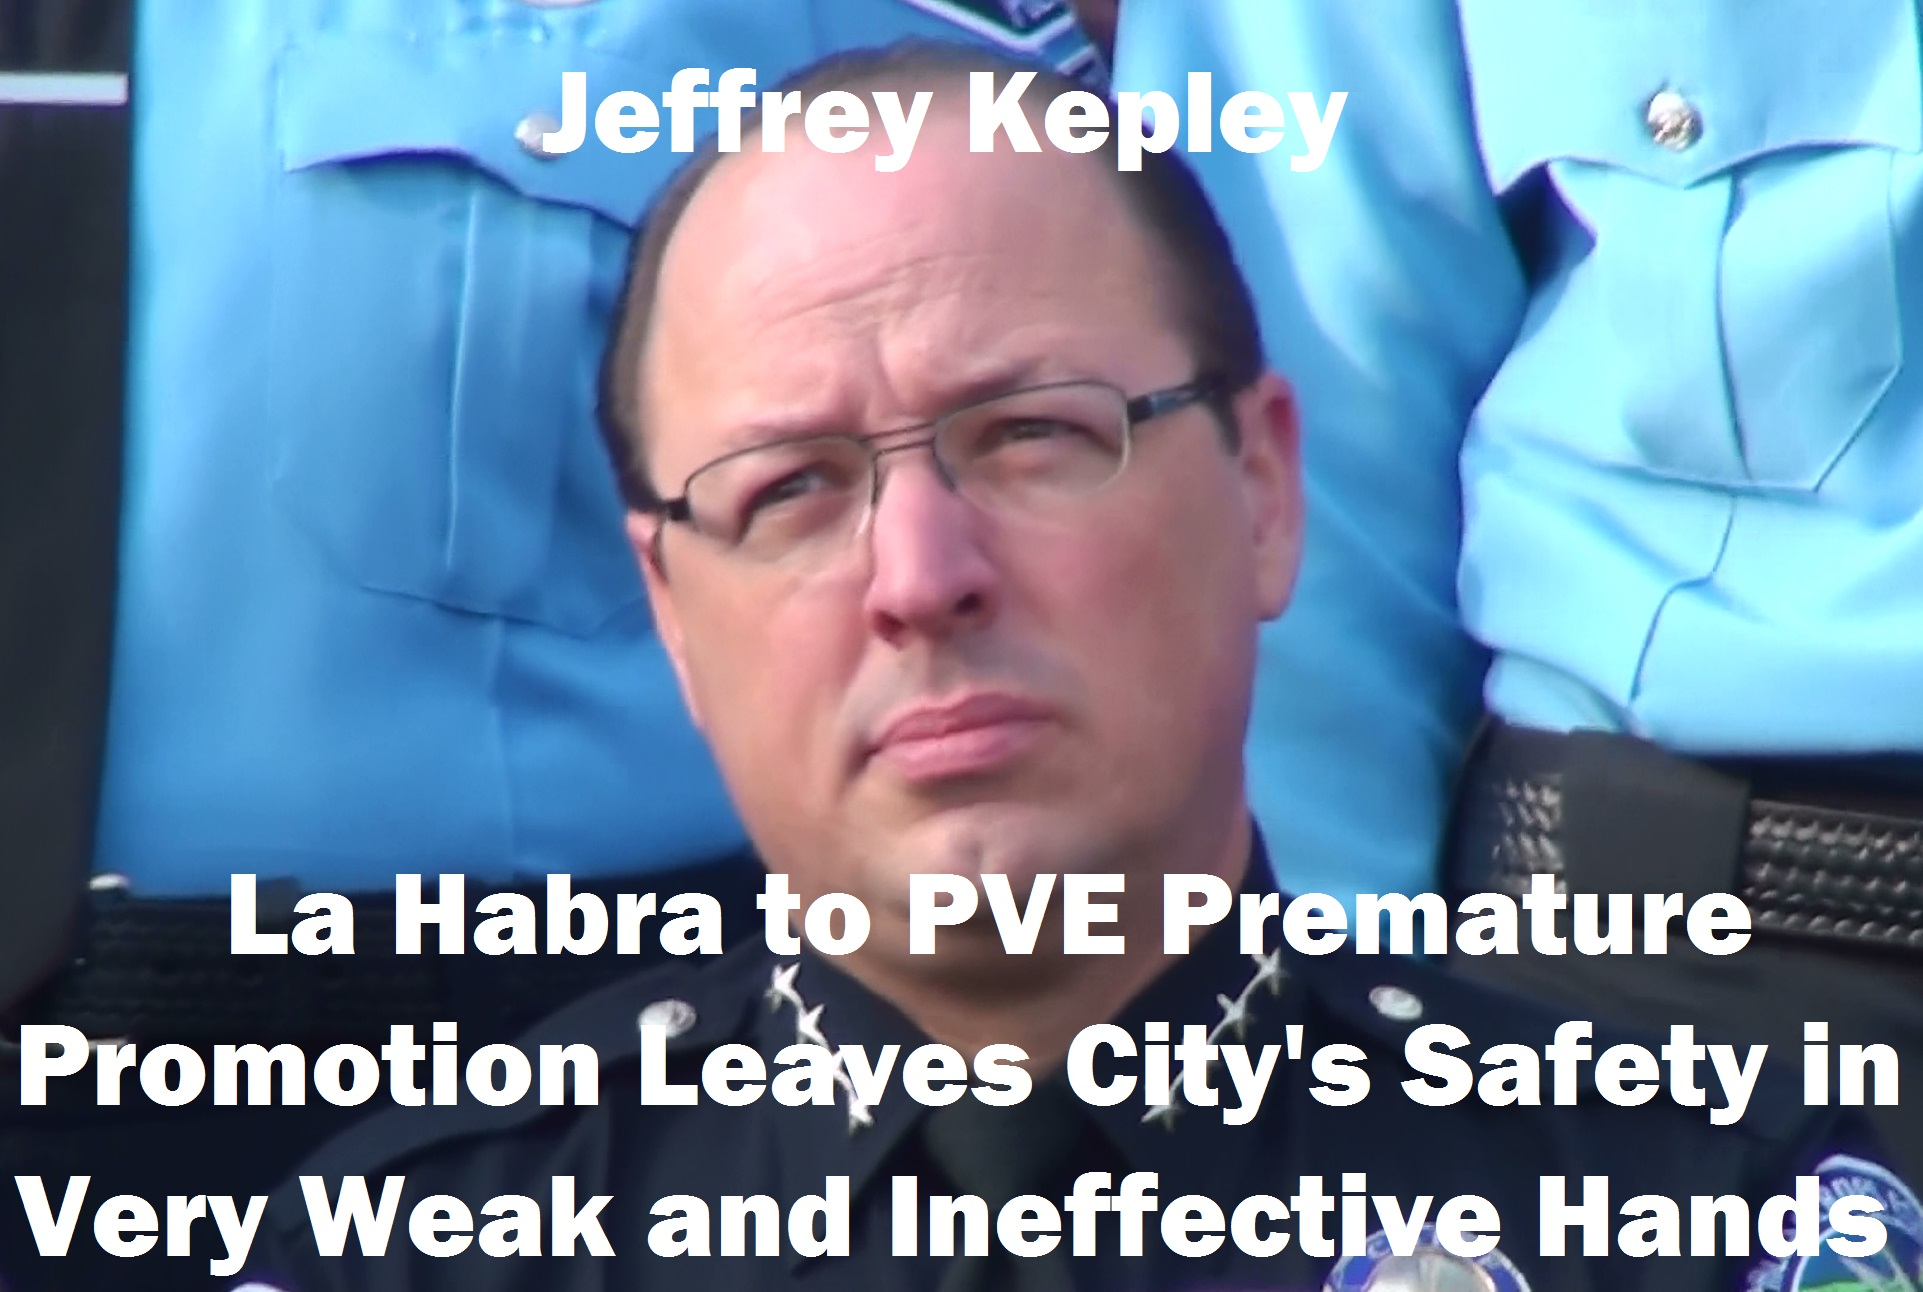 Kepley Jeff Photo Day Headshot 09-22-2015 - Cropped & Annotated